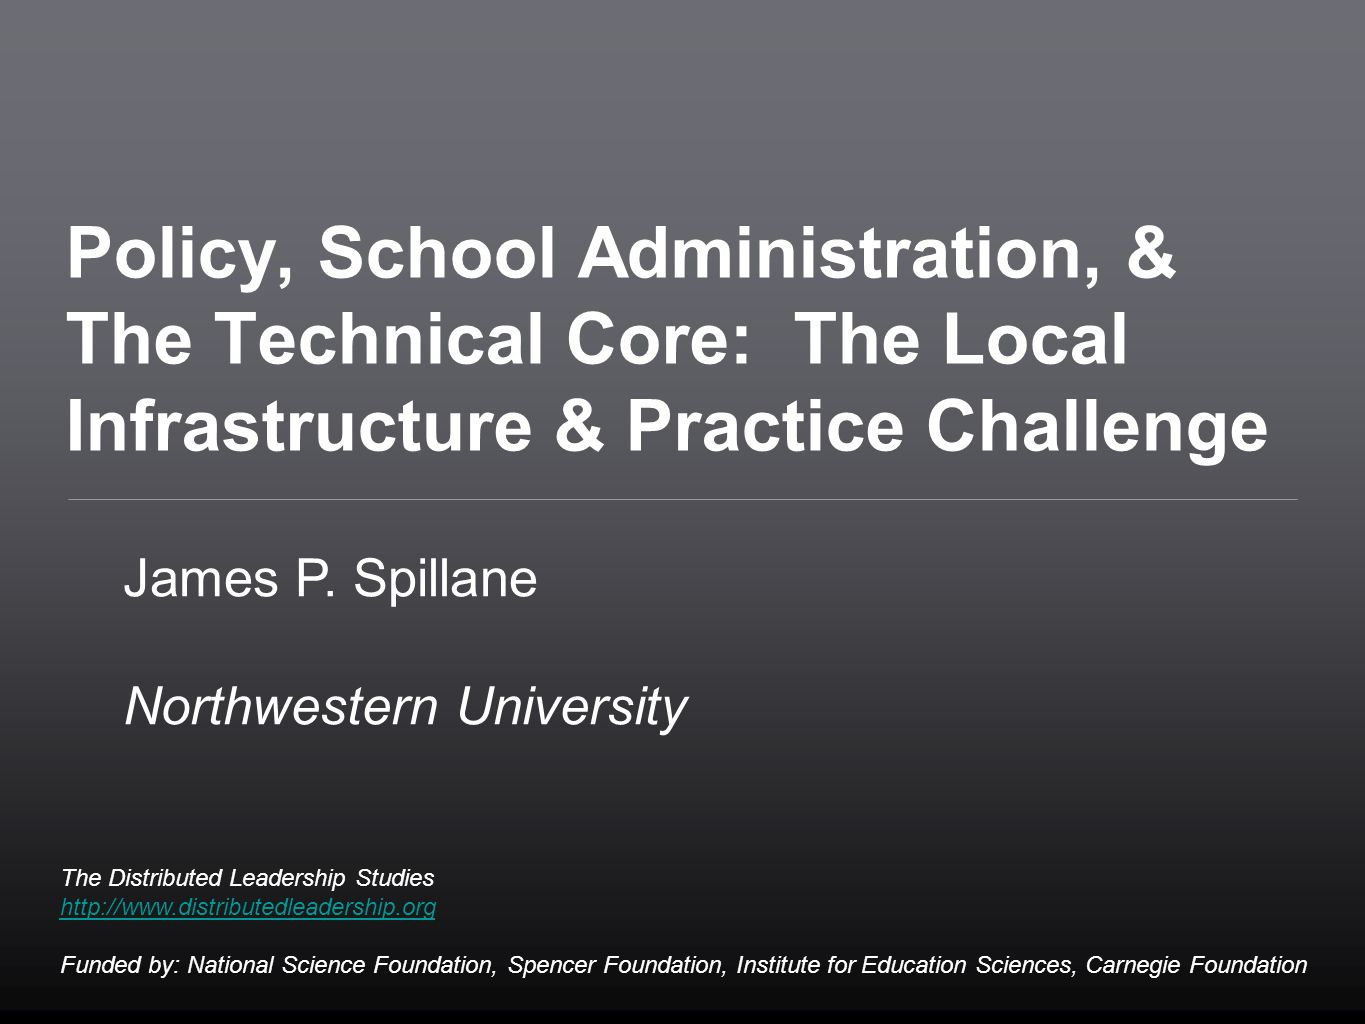 Policy, School Administration, & The Technical Core: The Local Infrastructure & Practice Challenge